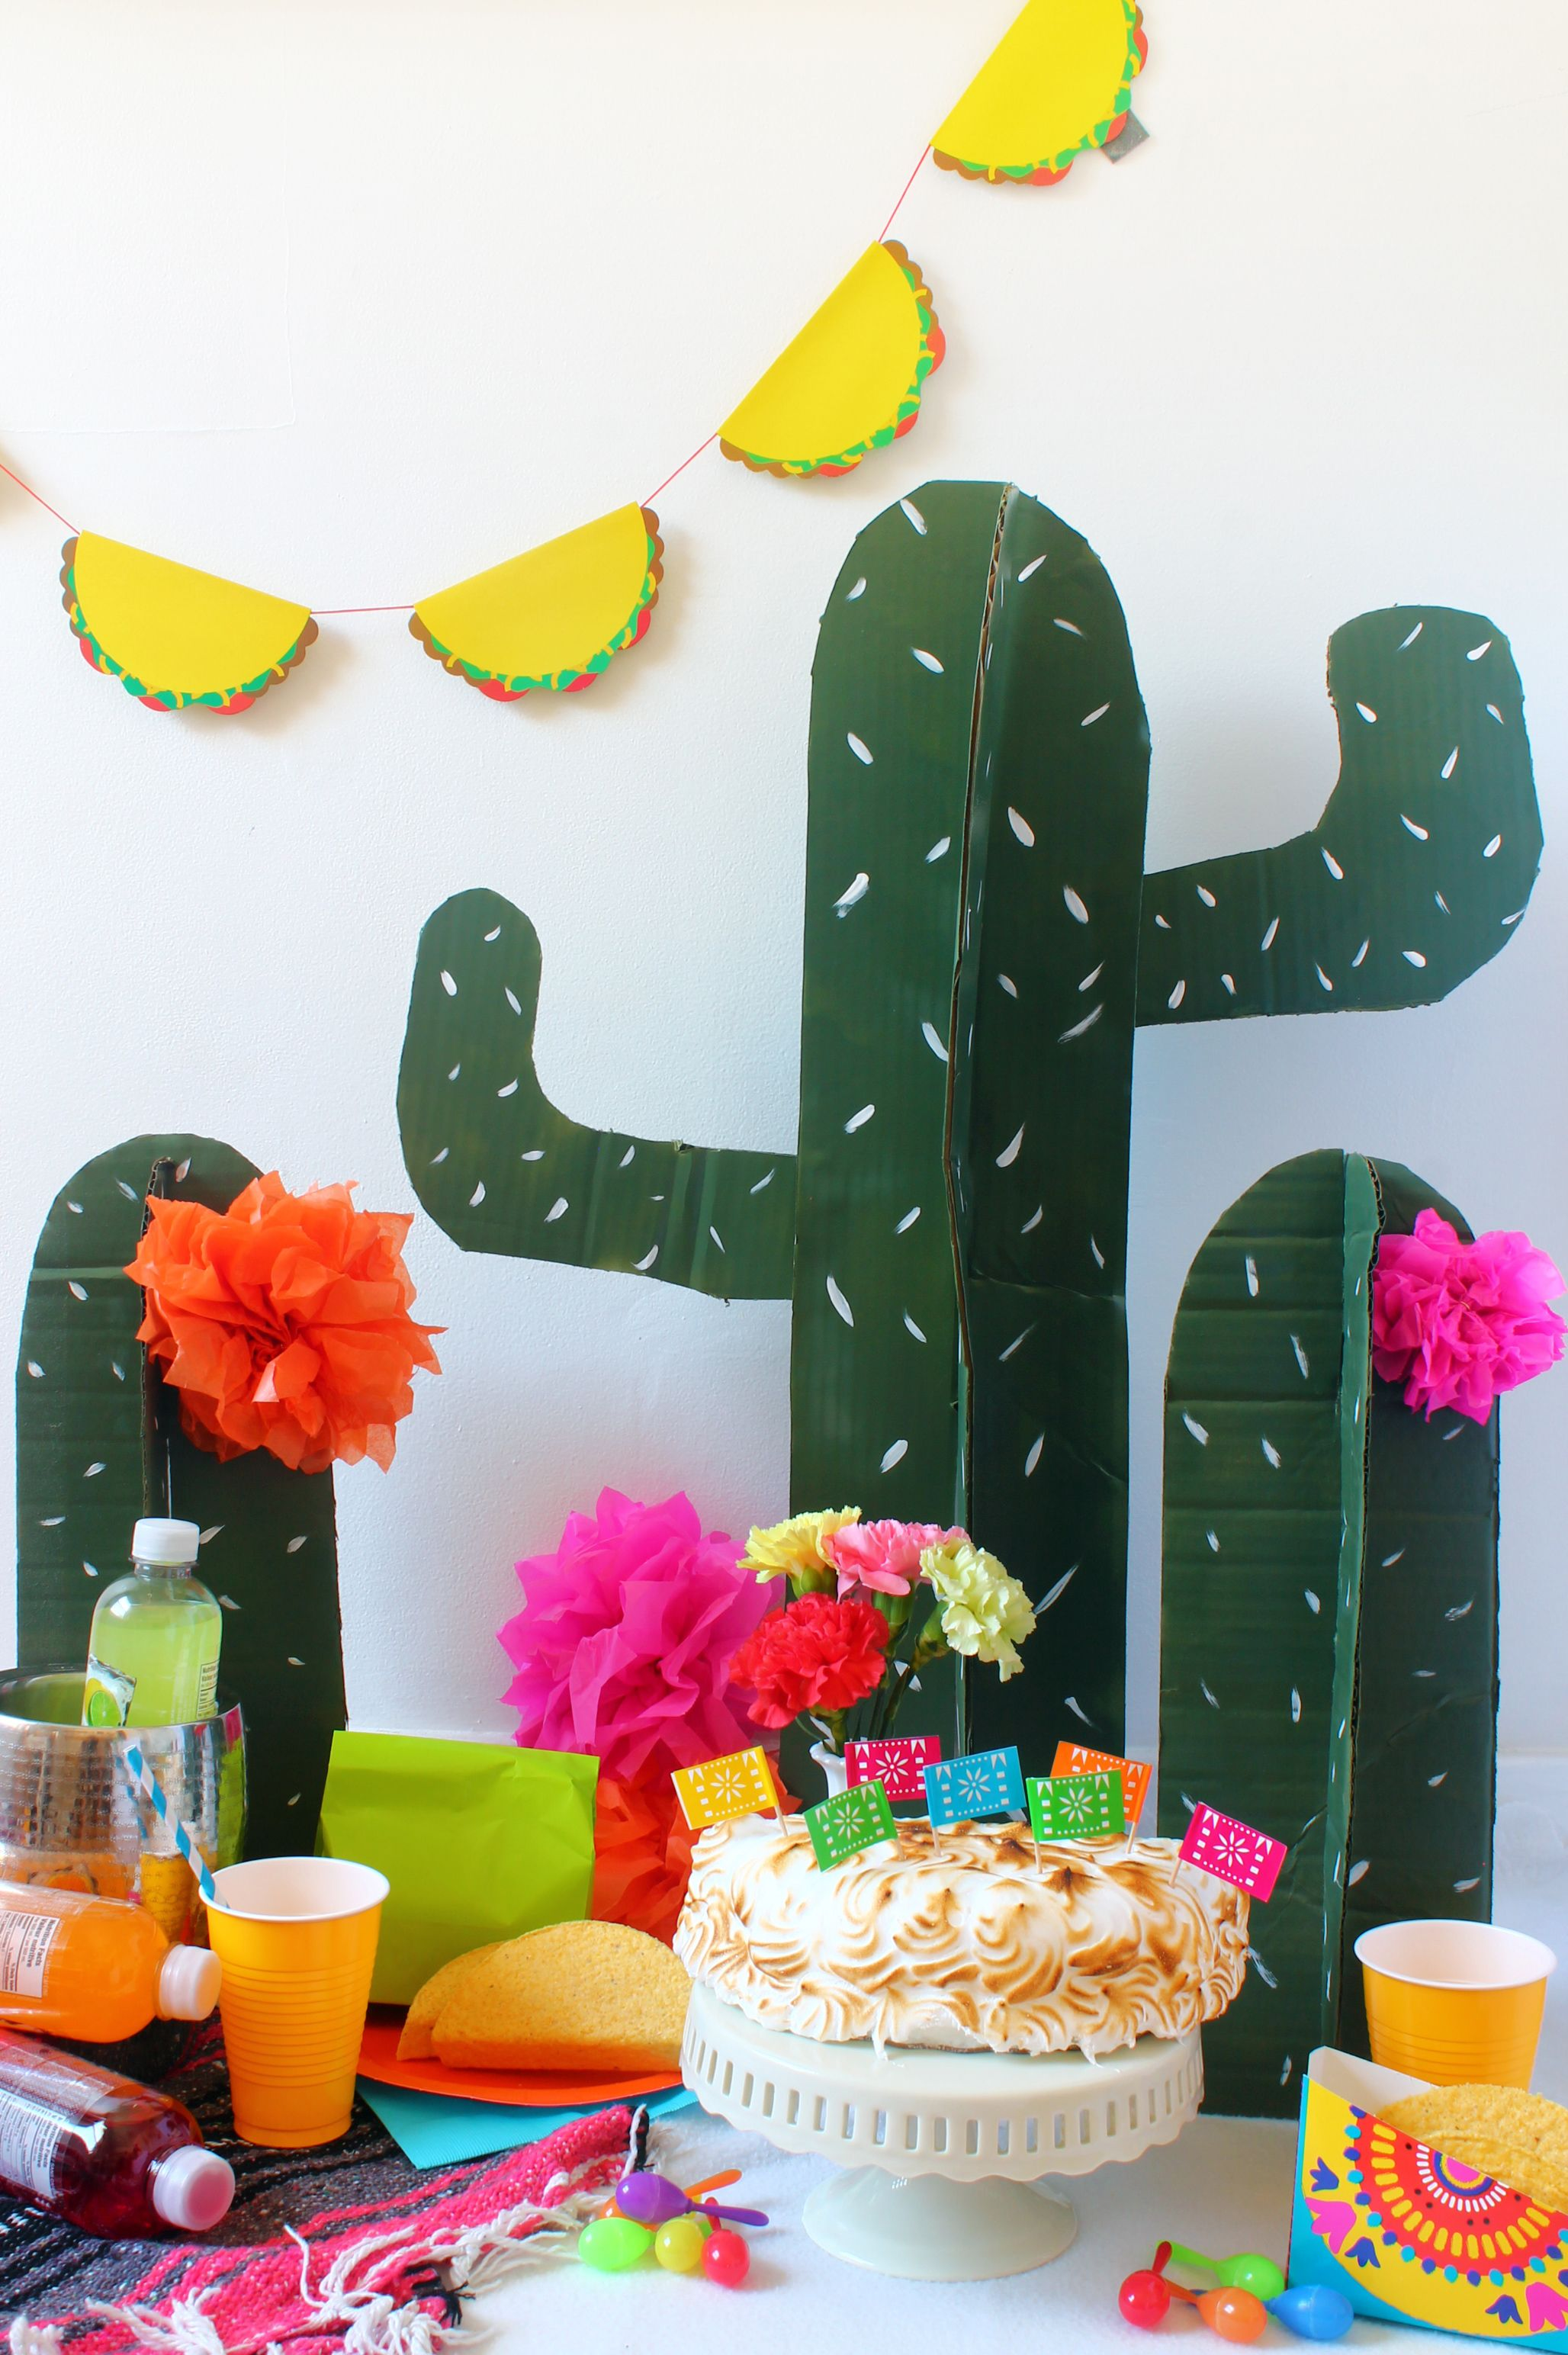 Diy decoracion fiesta mexicana fiesta mexicana y for Decoracion kermes mexicana